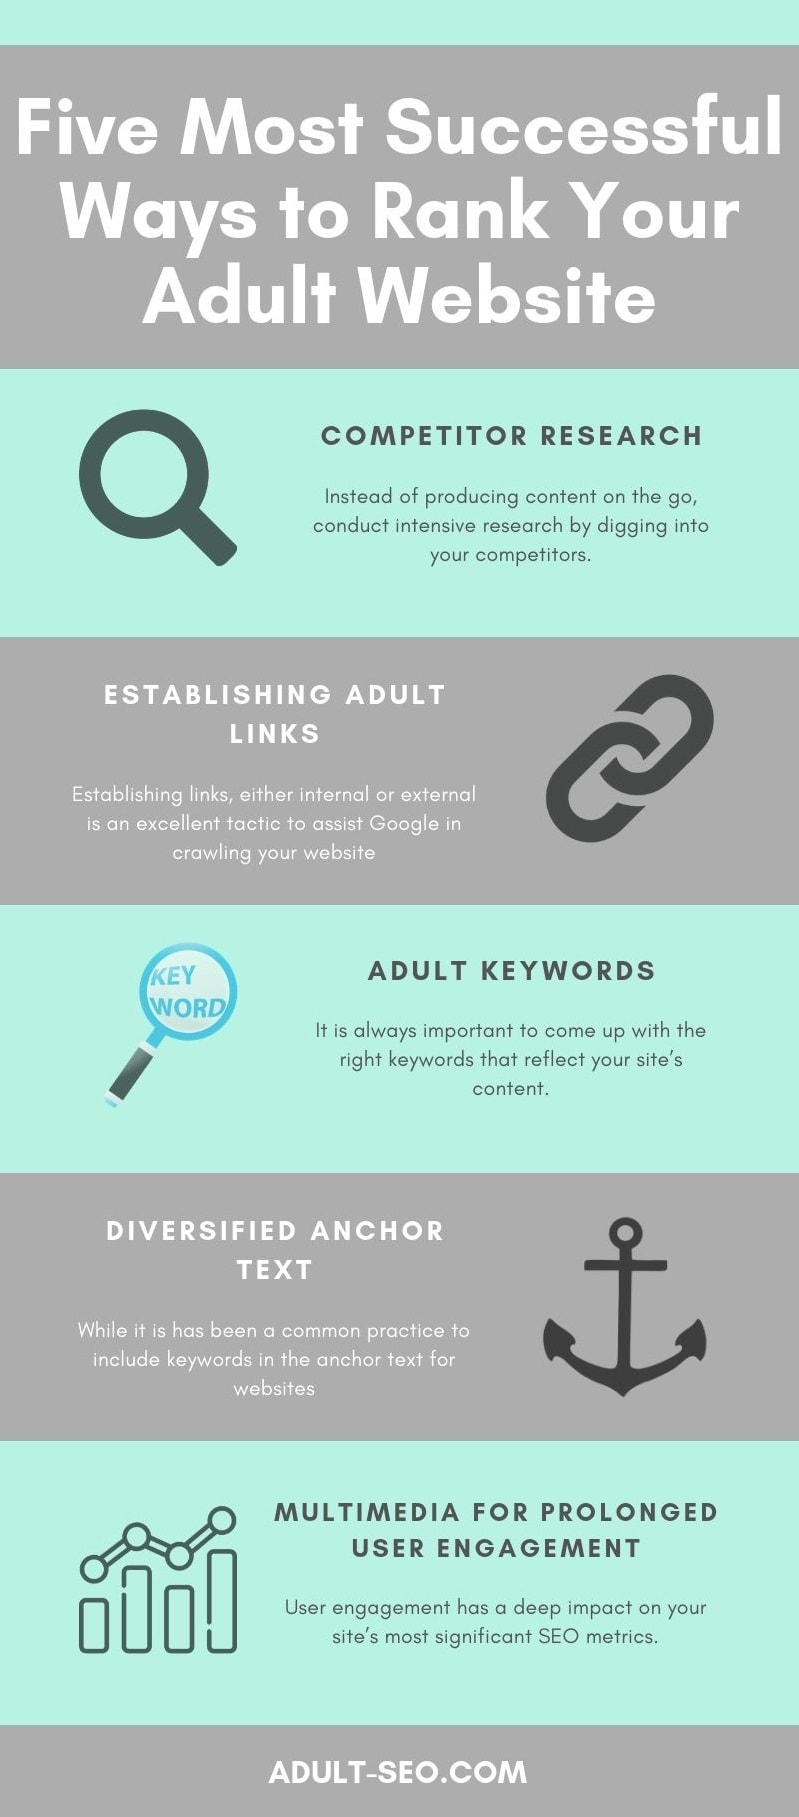 Five Most Successful Ways to Rank Your Adult Website